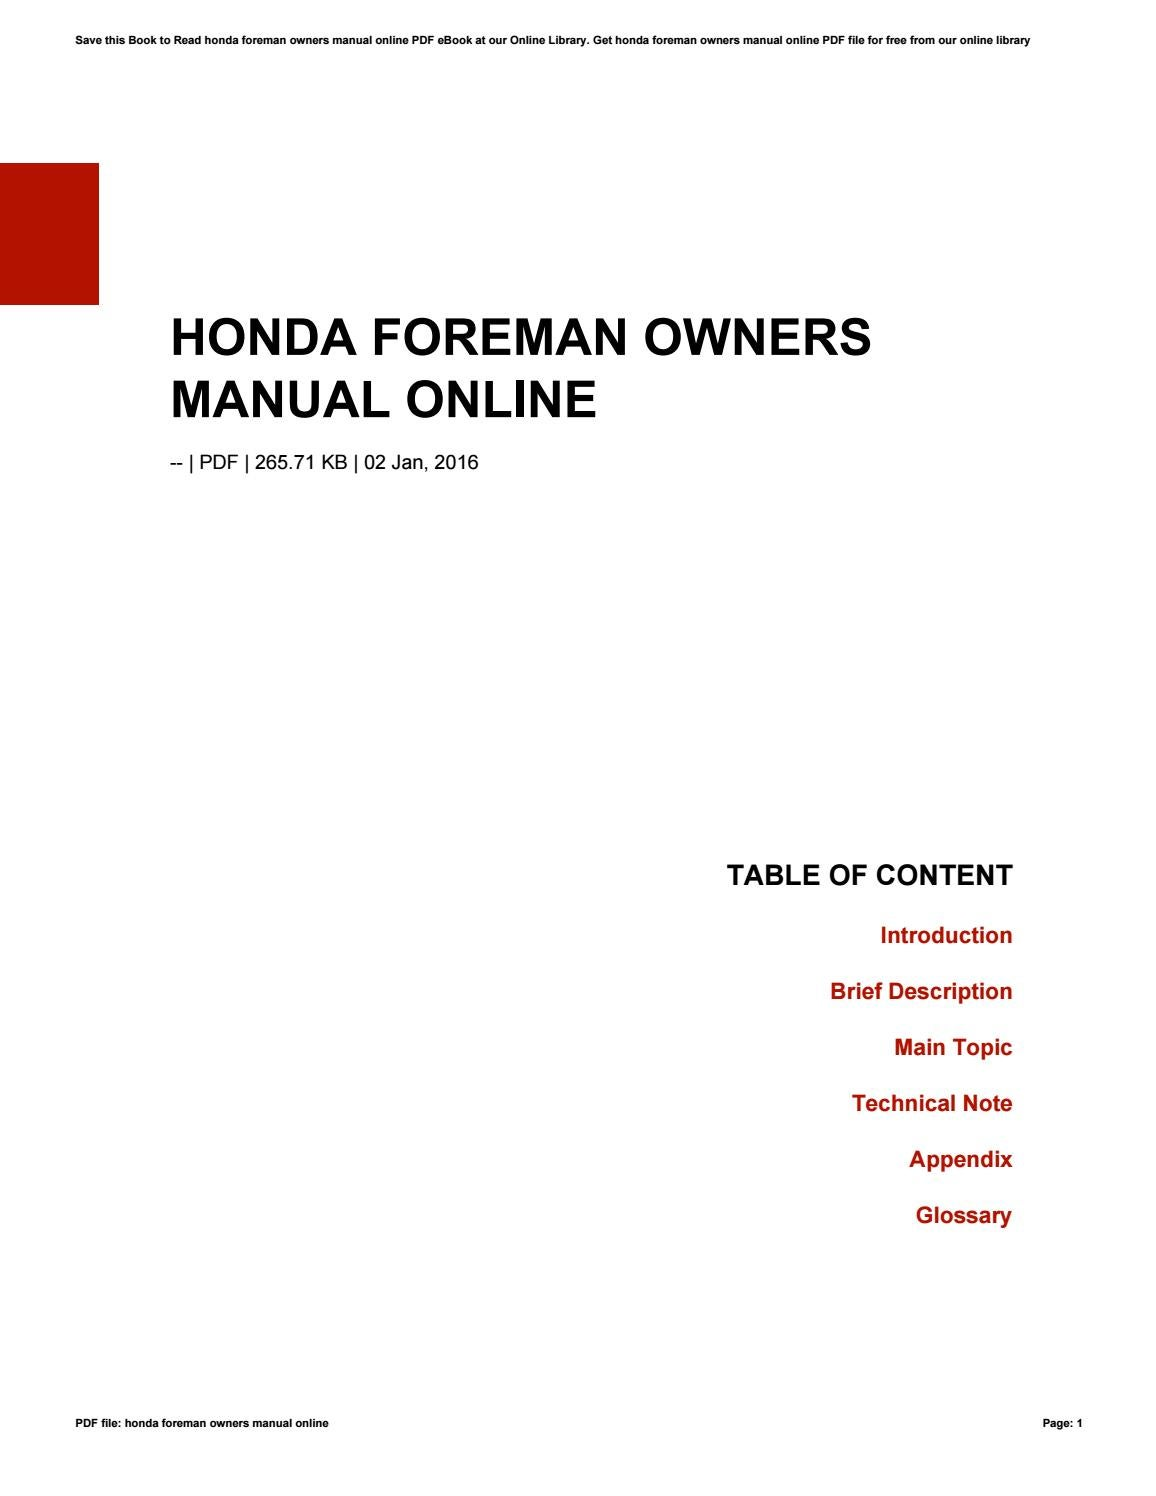 Honda Foreman Owners Manual Online by vernoncummings986